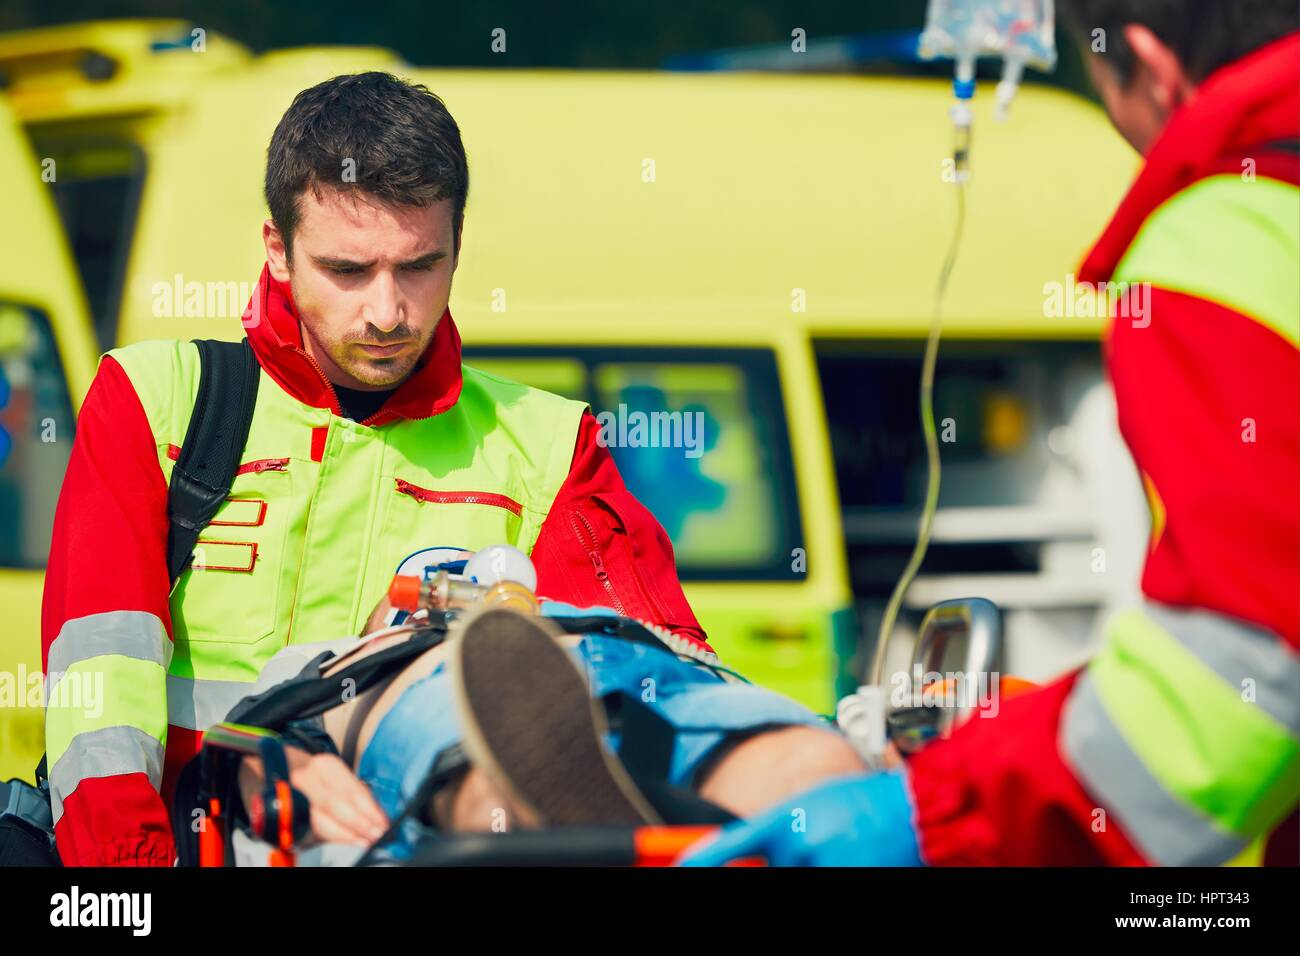 Team of rescuers (paramedic and doctor) preparing the patient after resuscitation for transport to the hospital. - Stock Image